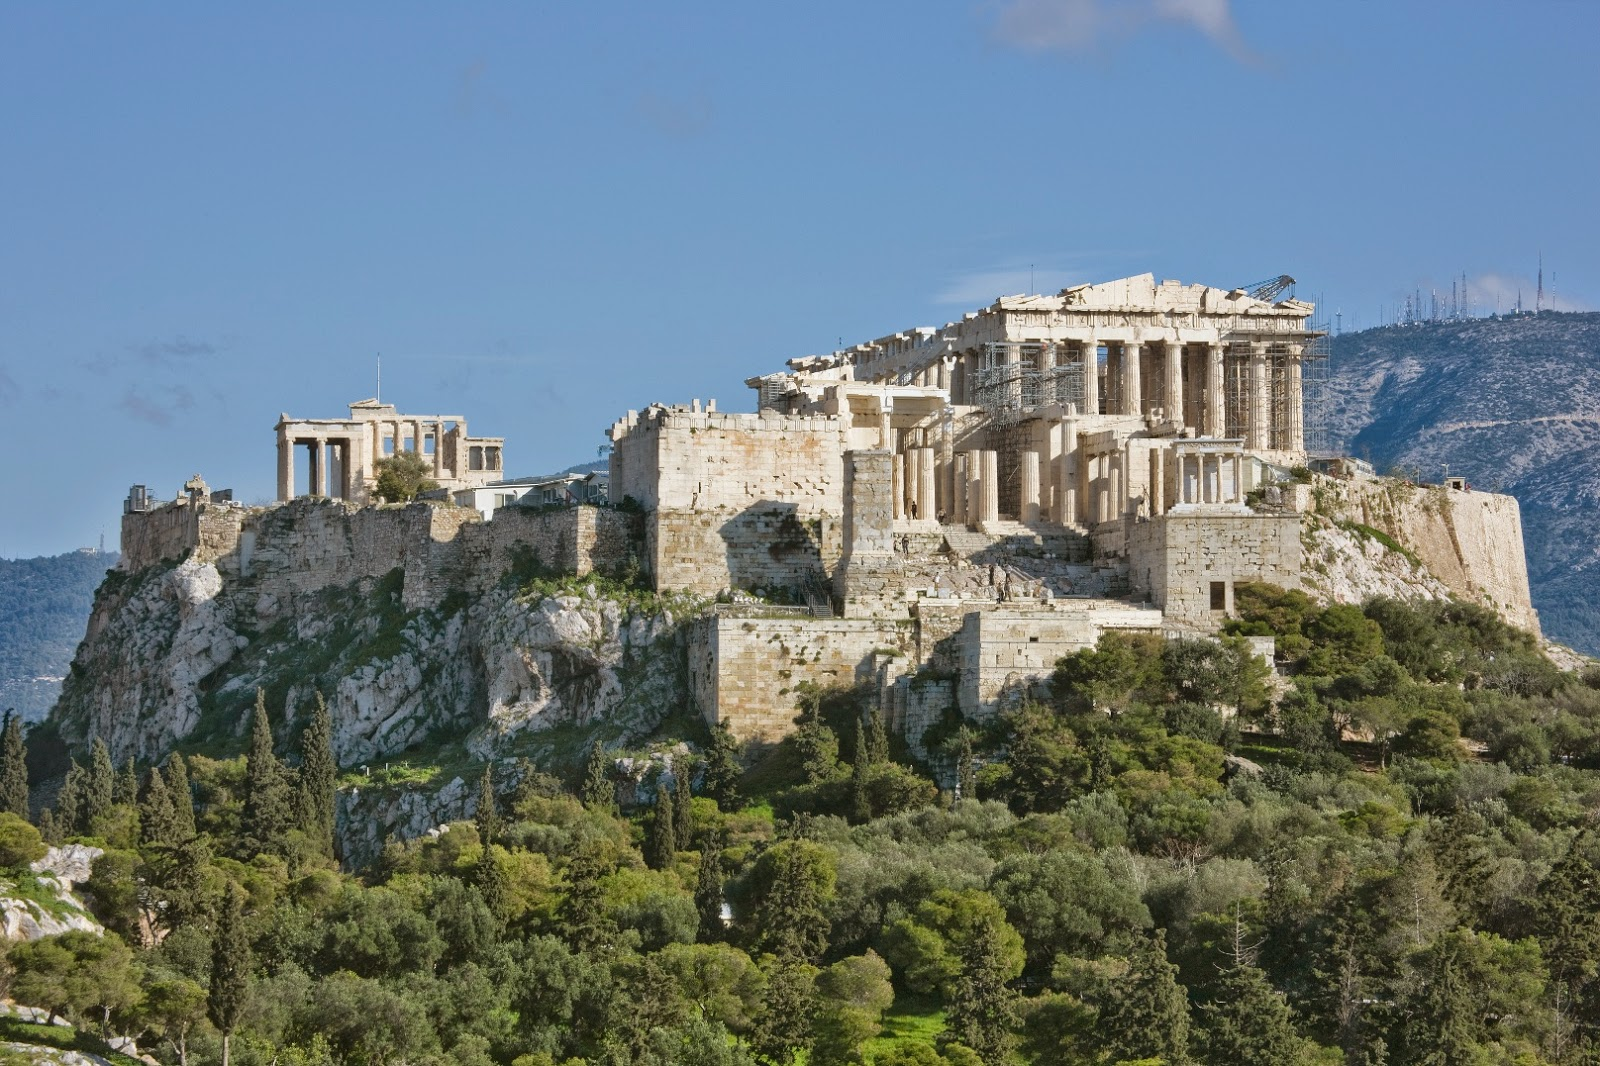 Acropolis of Athens built to withstand earthquakes